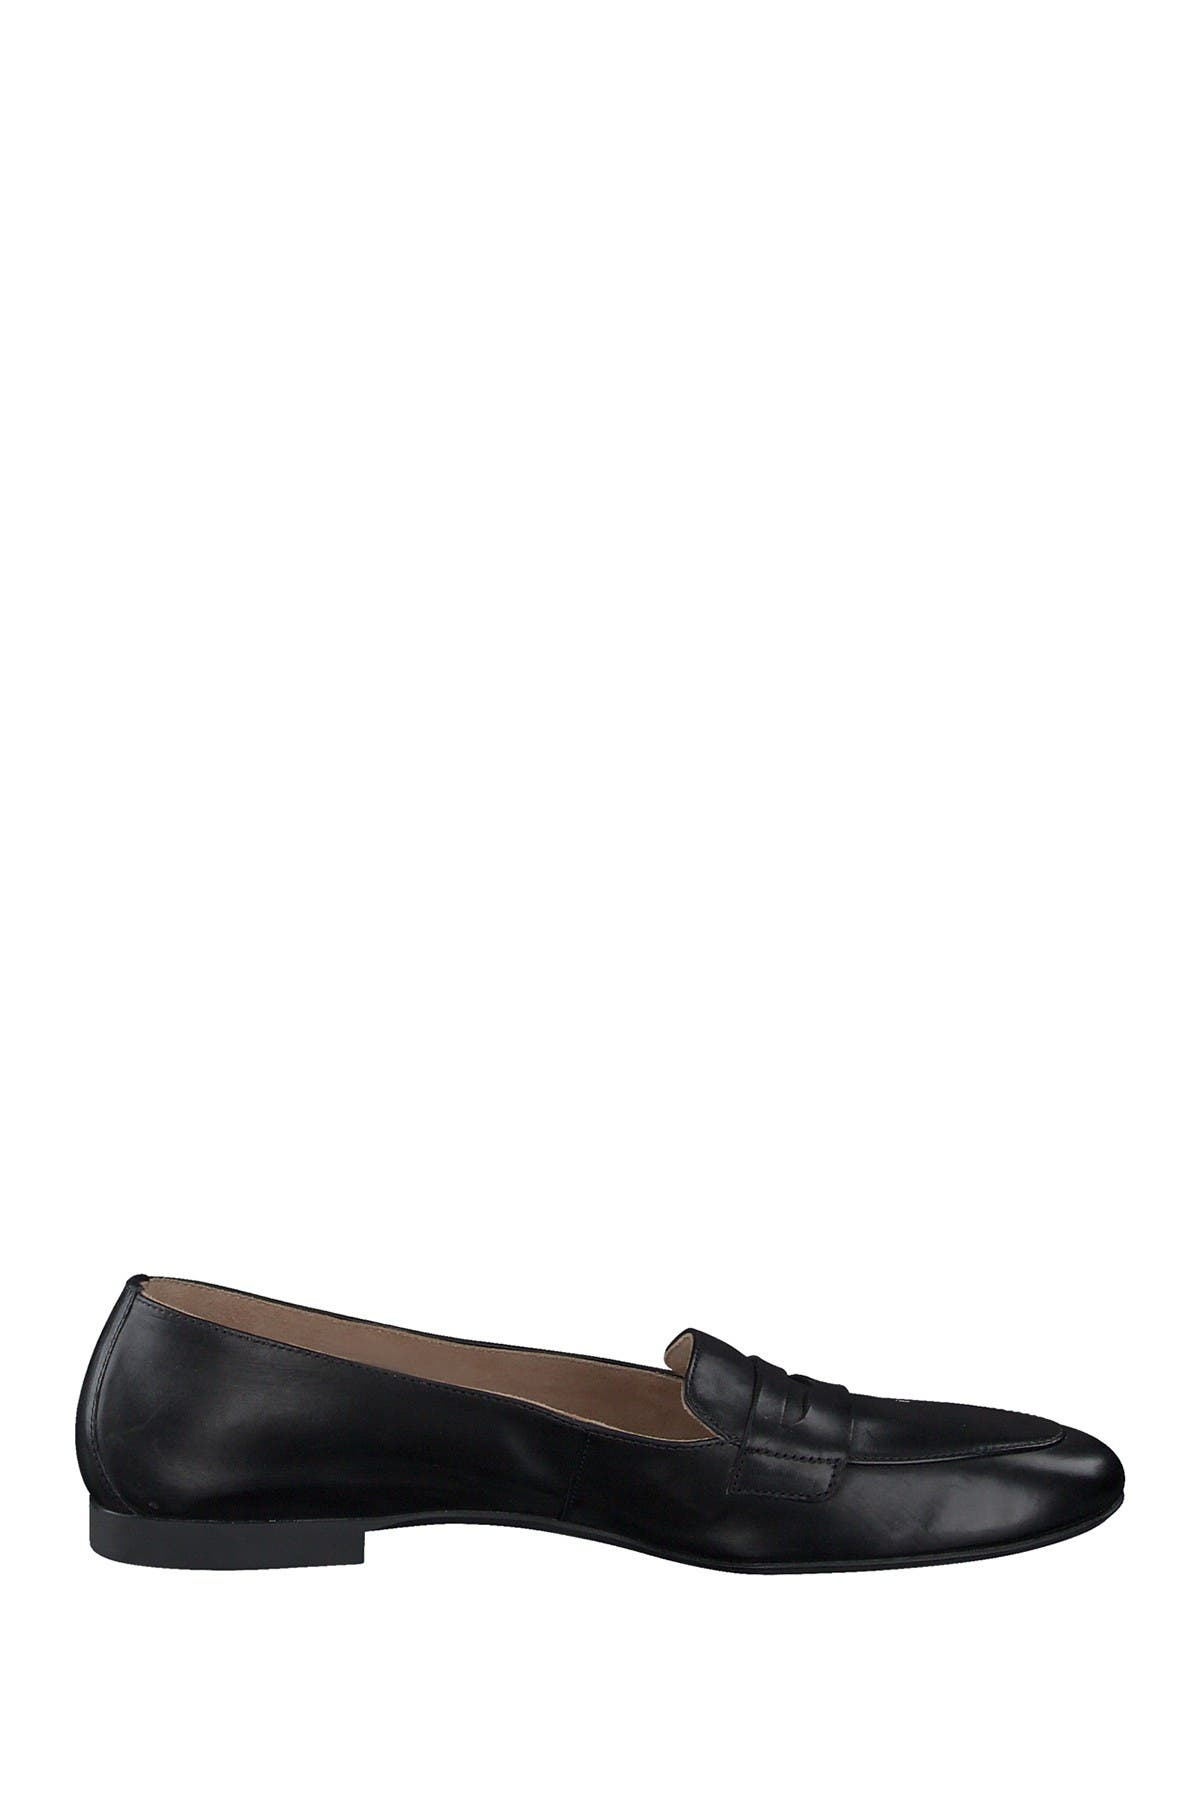 Image of Paul Green Suede Loafer